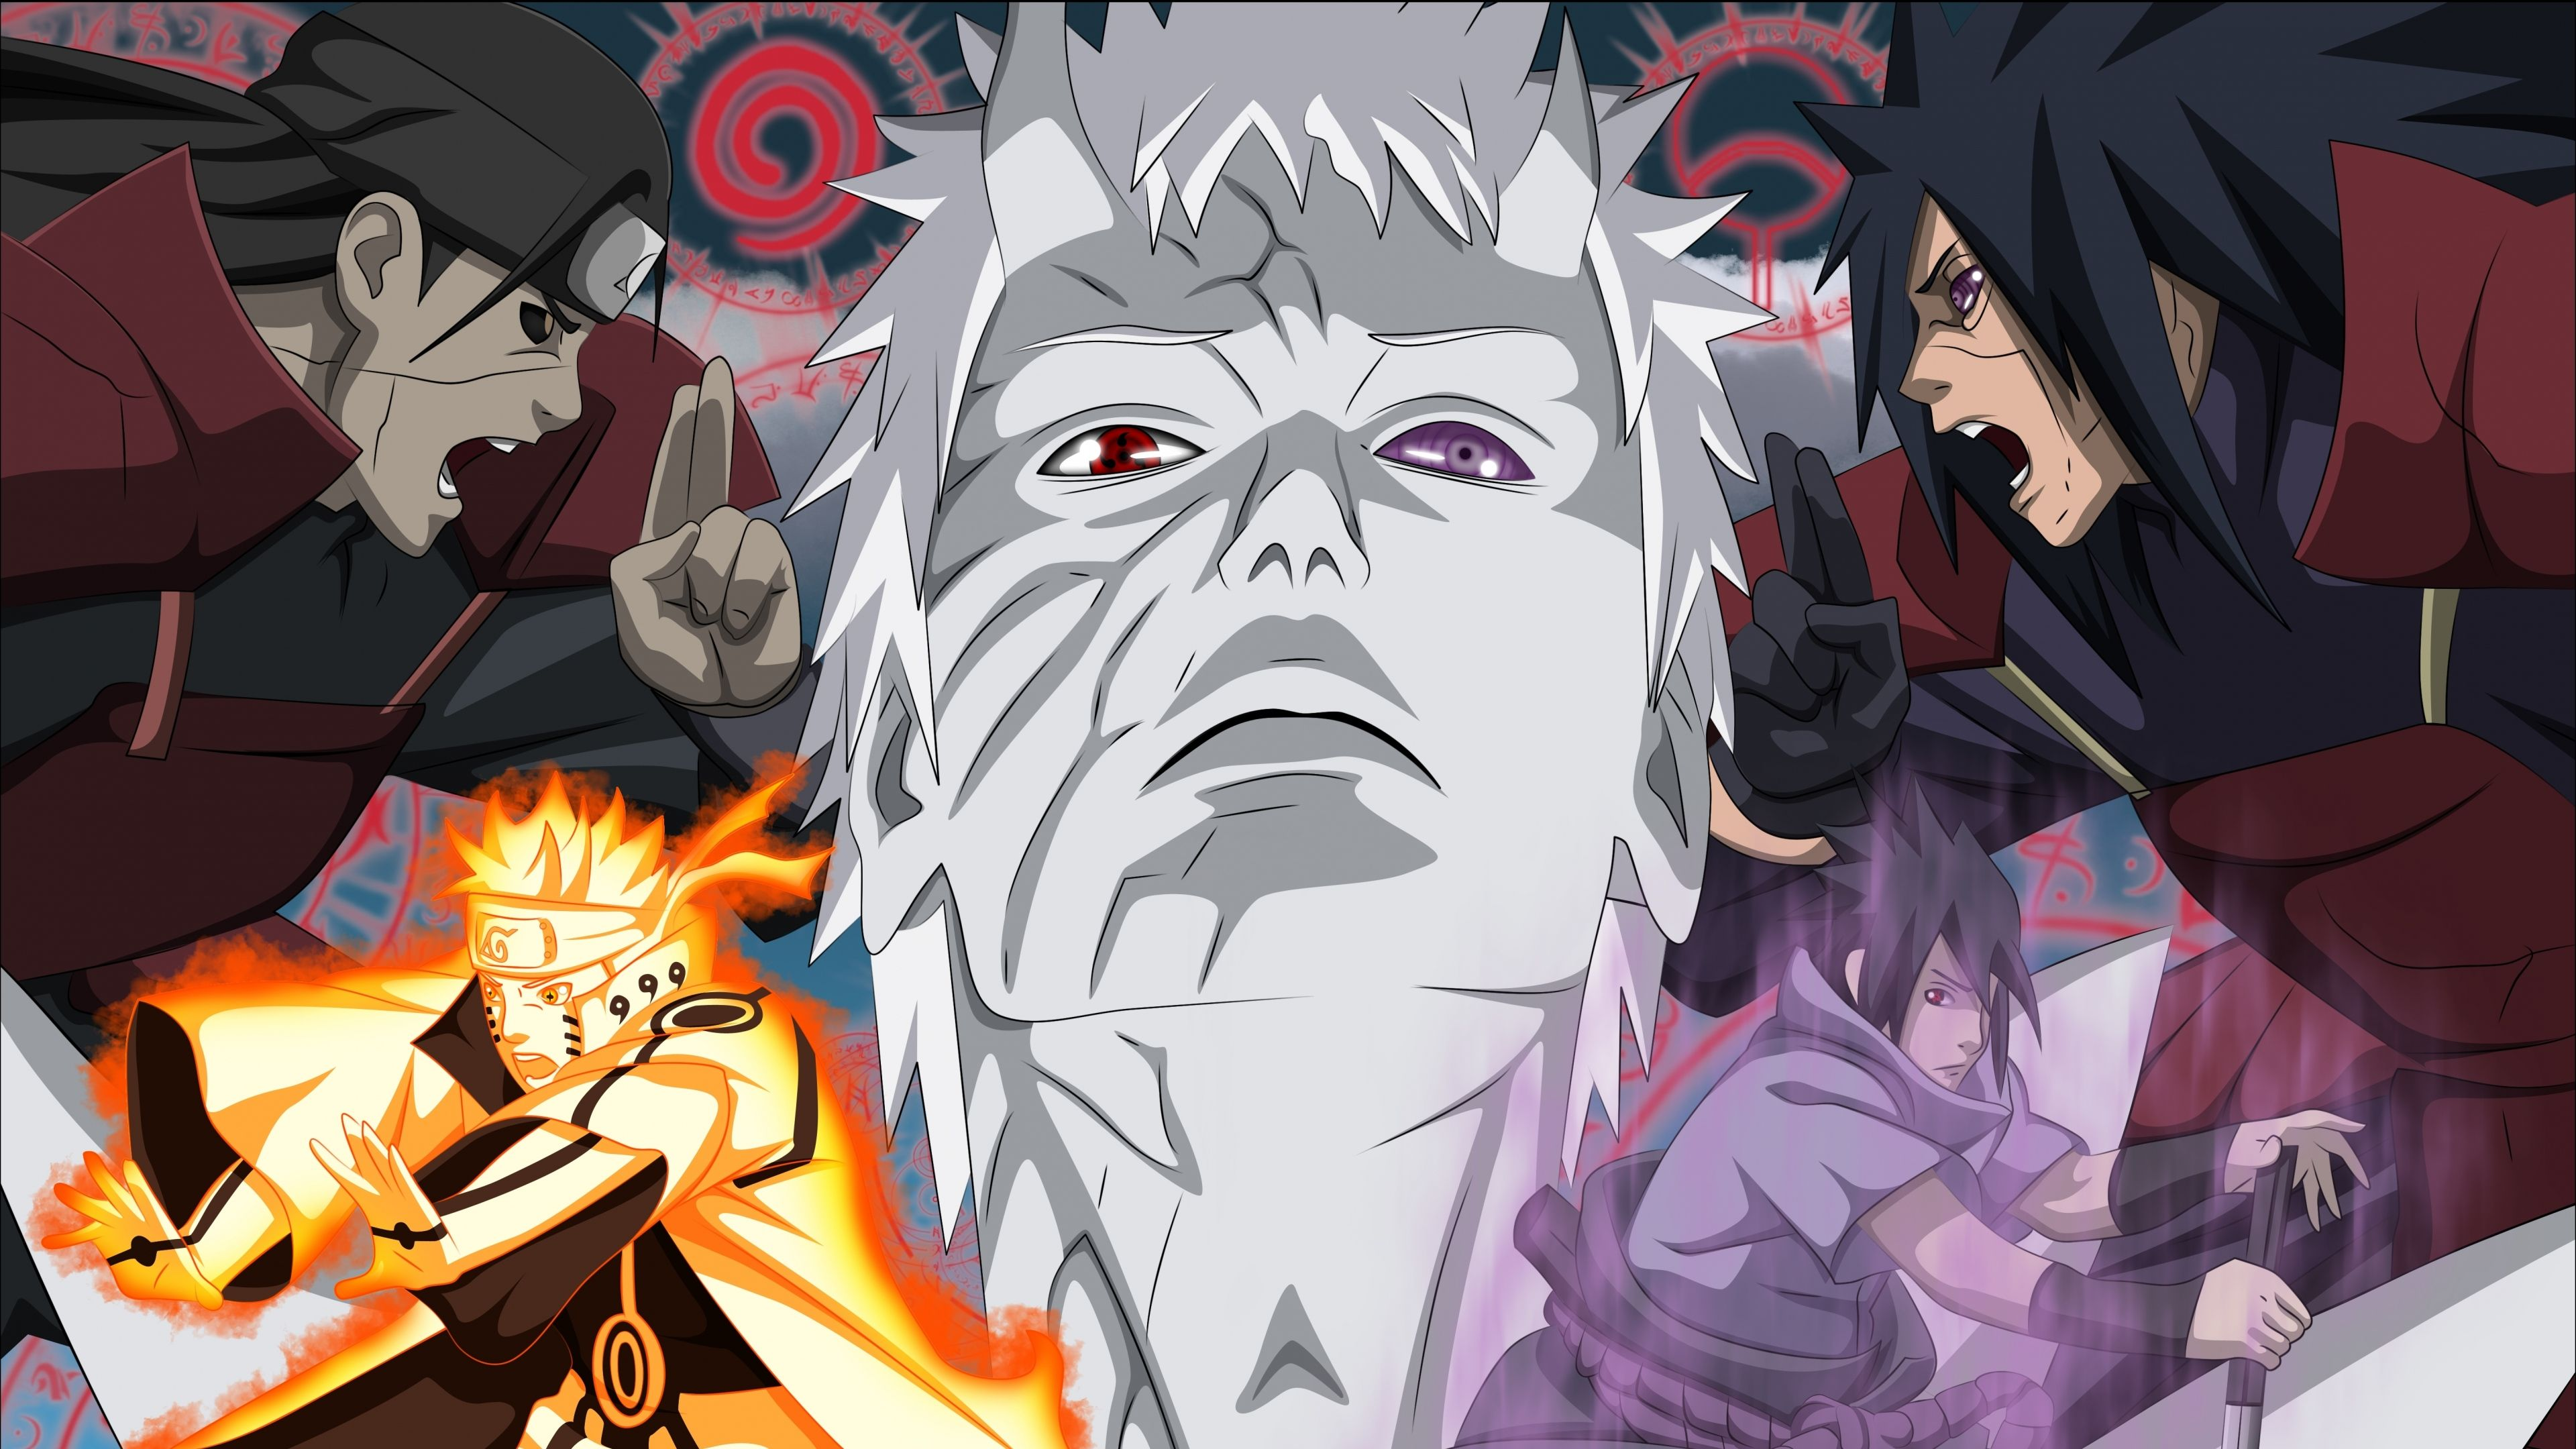 3840x2160 Wallpaper madara uchiha, naruto anime, obito